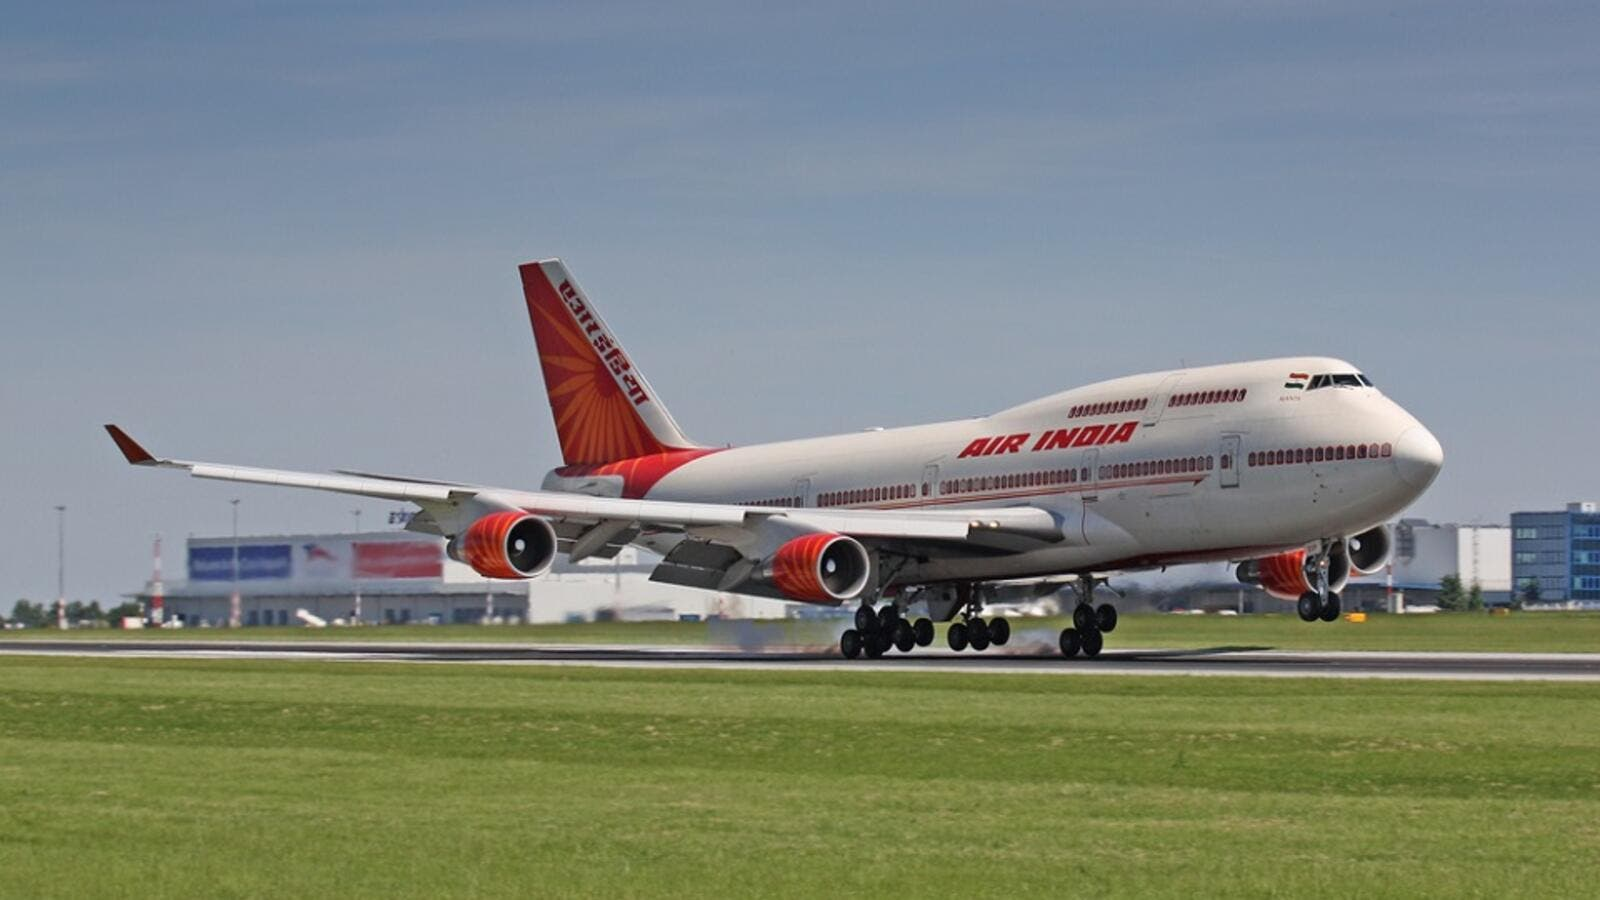 March Air Show 2020.India To Complete The Sale Of Air India Bharat Petroleum By